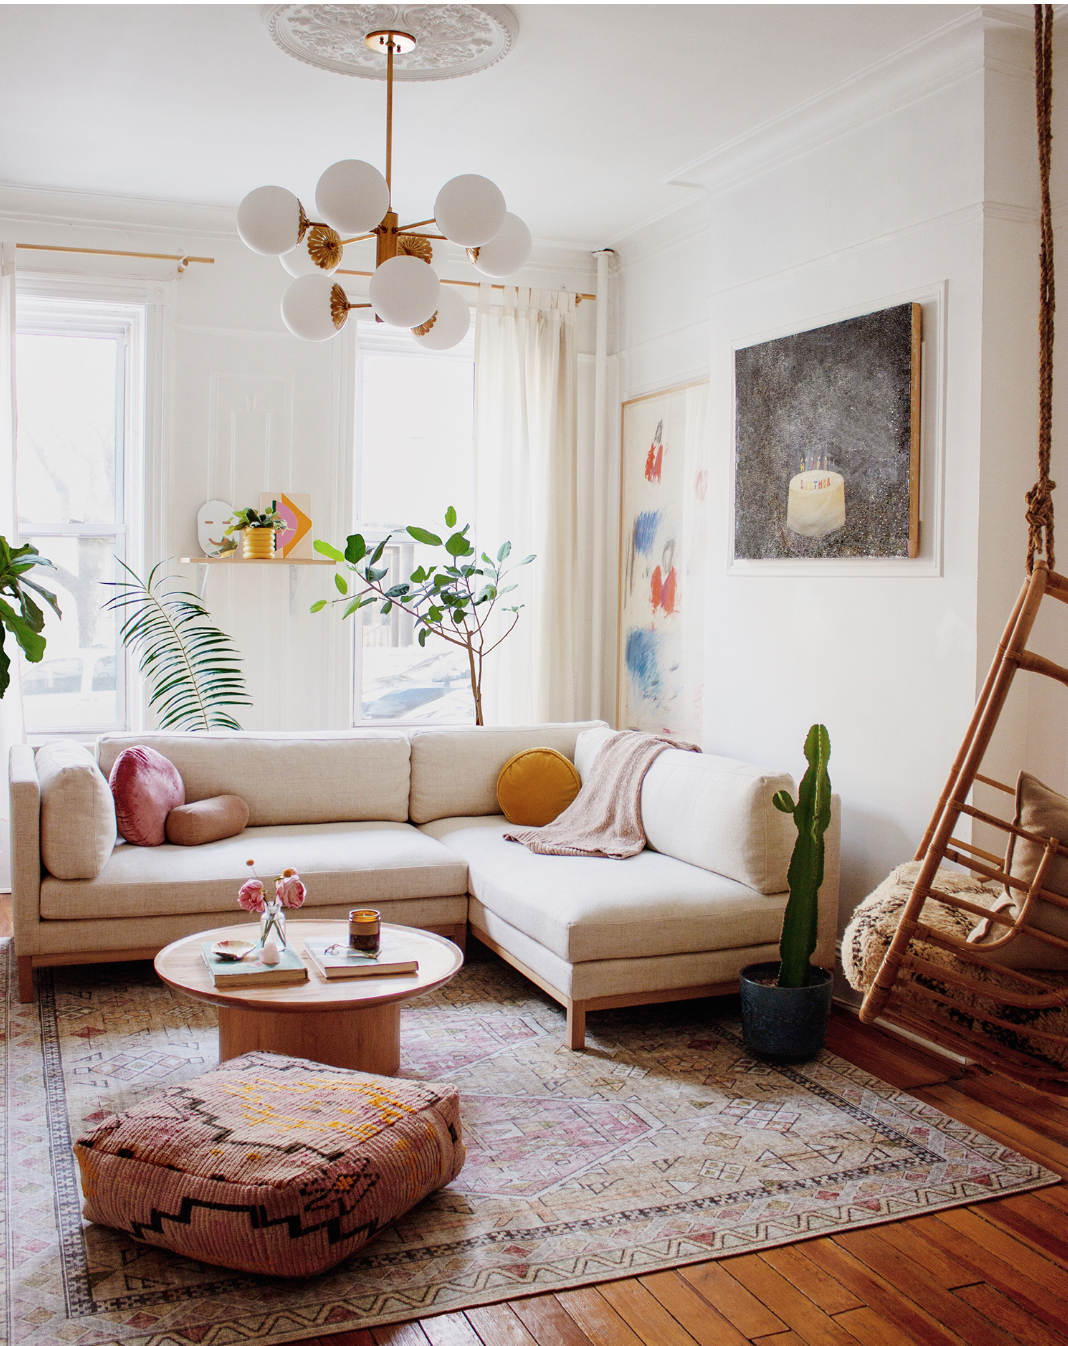 Greenpoint Gem - An airy bohemian classic brick townhouse in Brooklyn, NY.